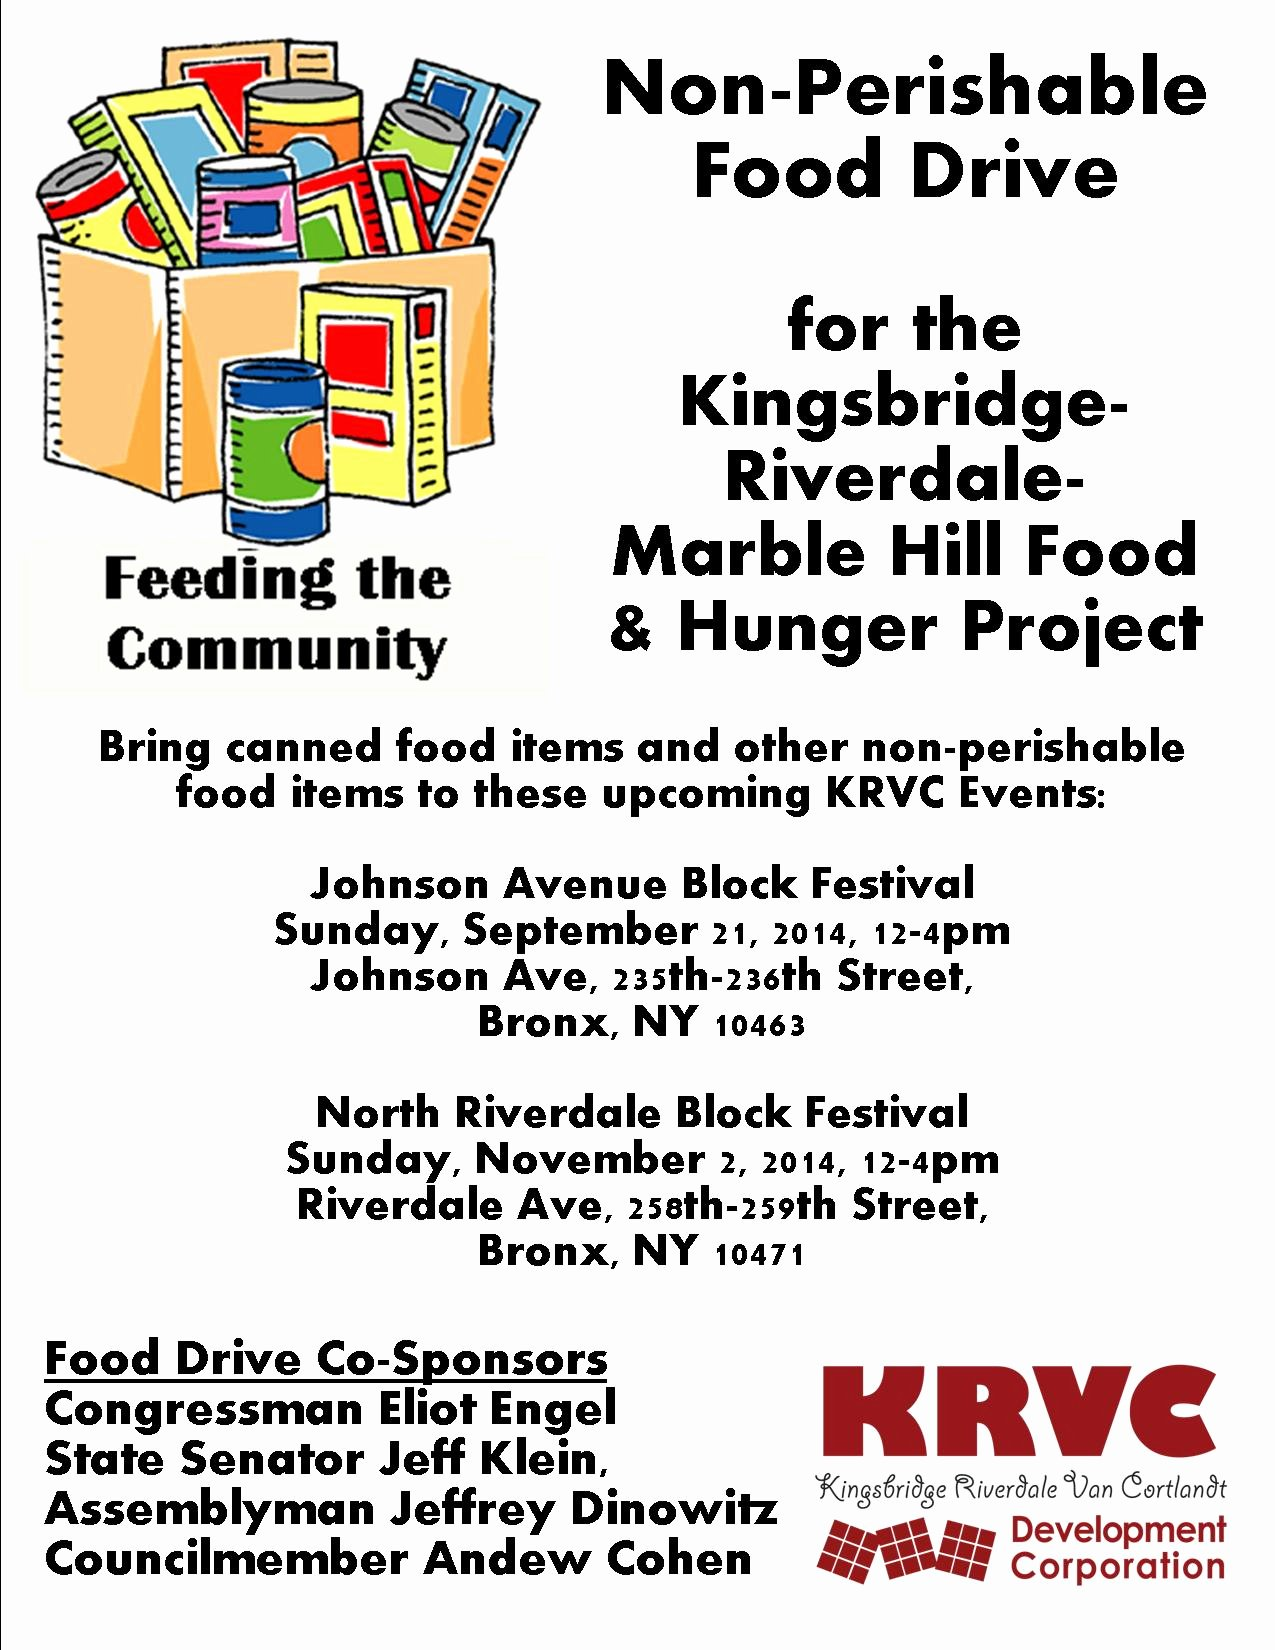 Canned Food Drive Flyer Luxury Krvc Announces Non Perishable Food Drive